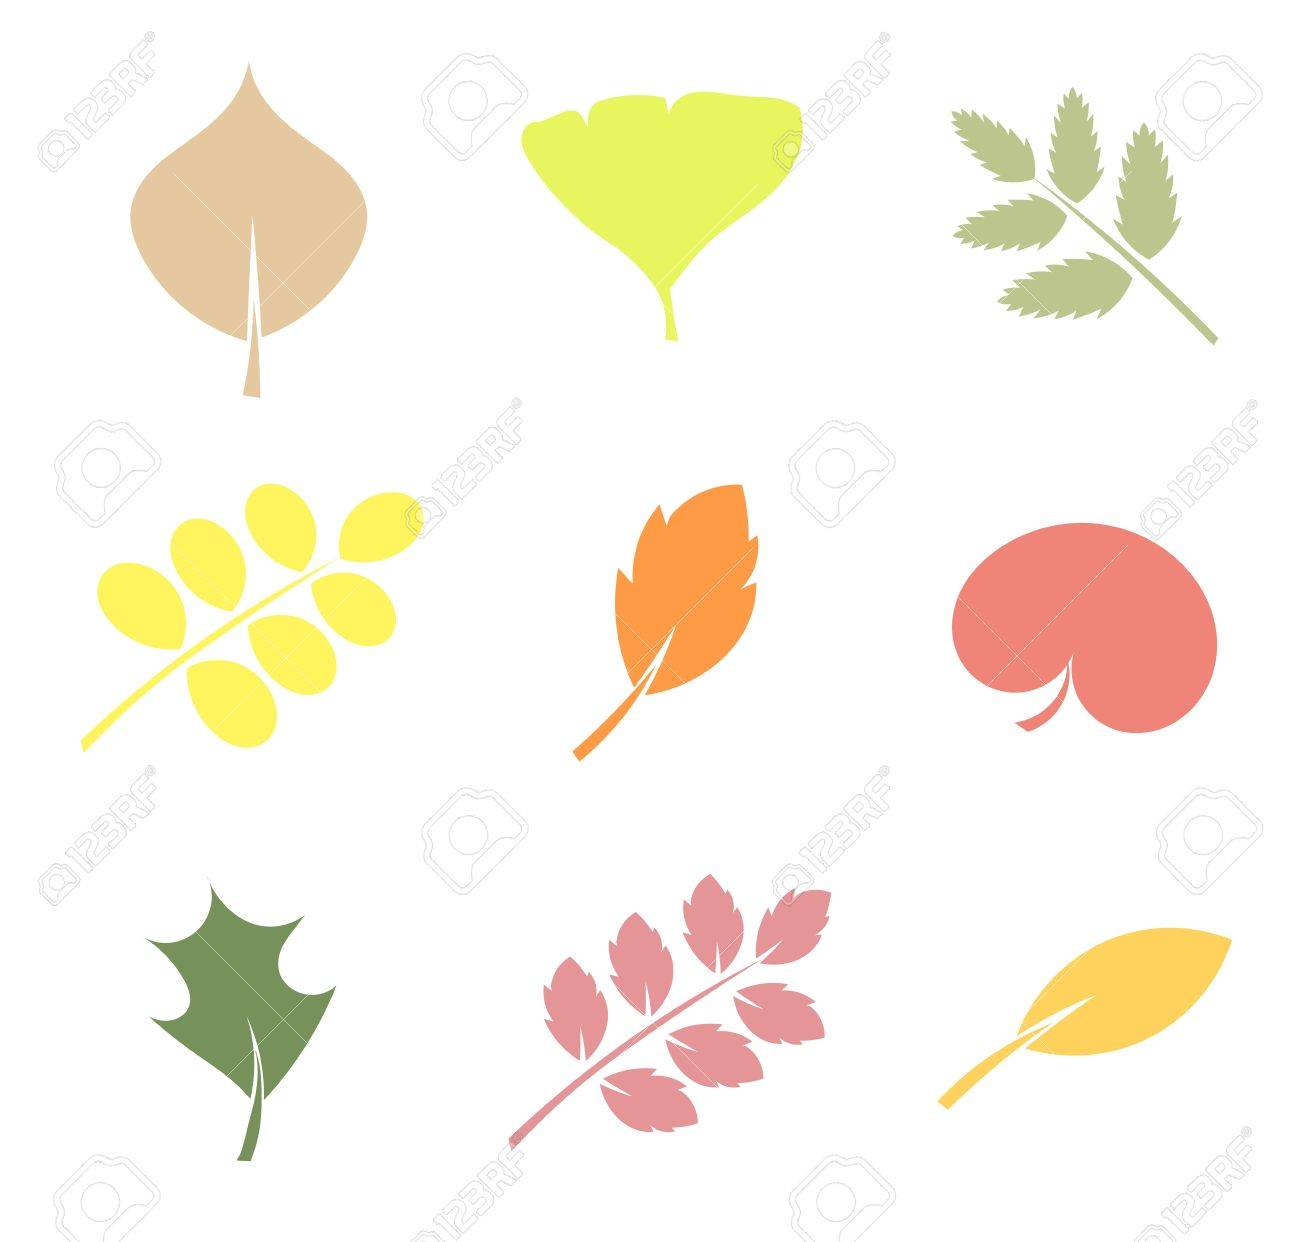 Various shapes of leaves Stock Vector - 15809725